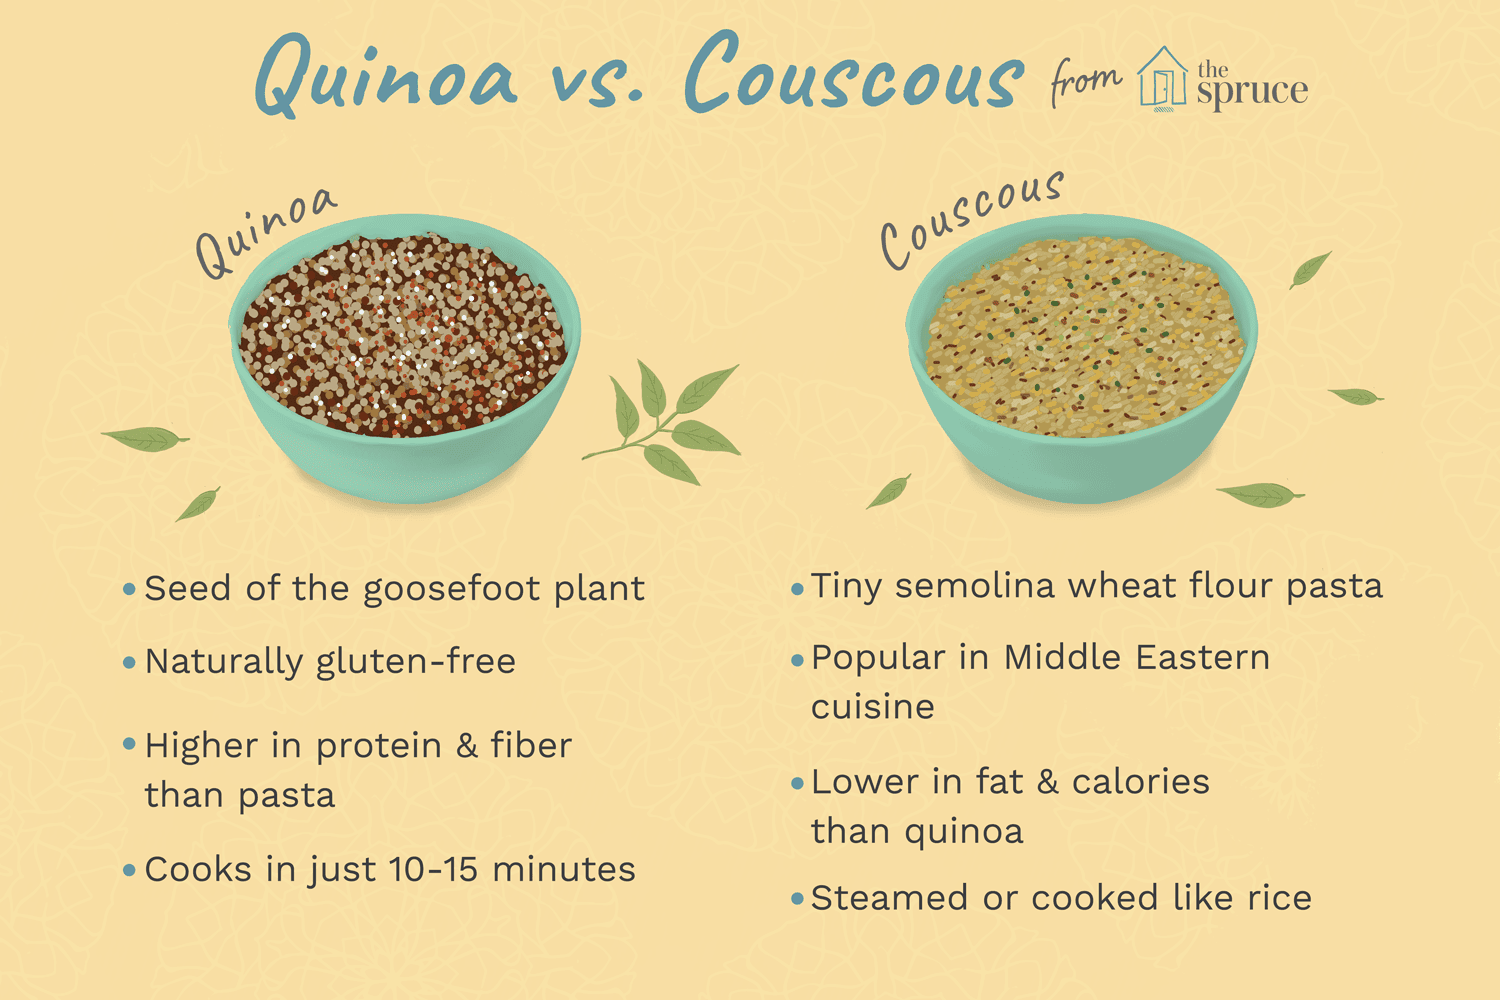 How To Tell The Difference Between Quinoa And Couscous